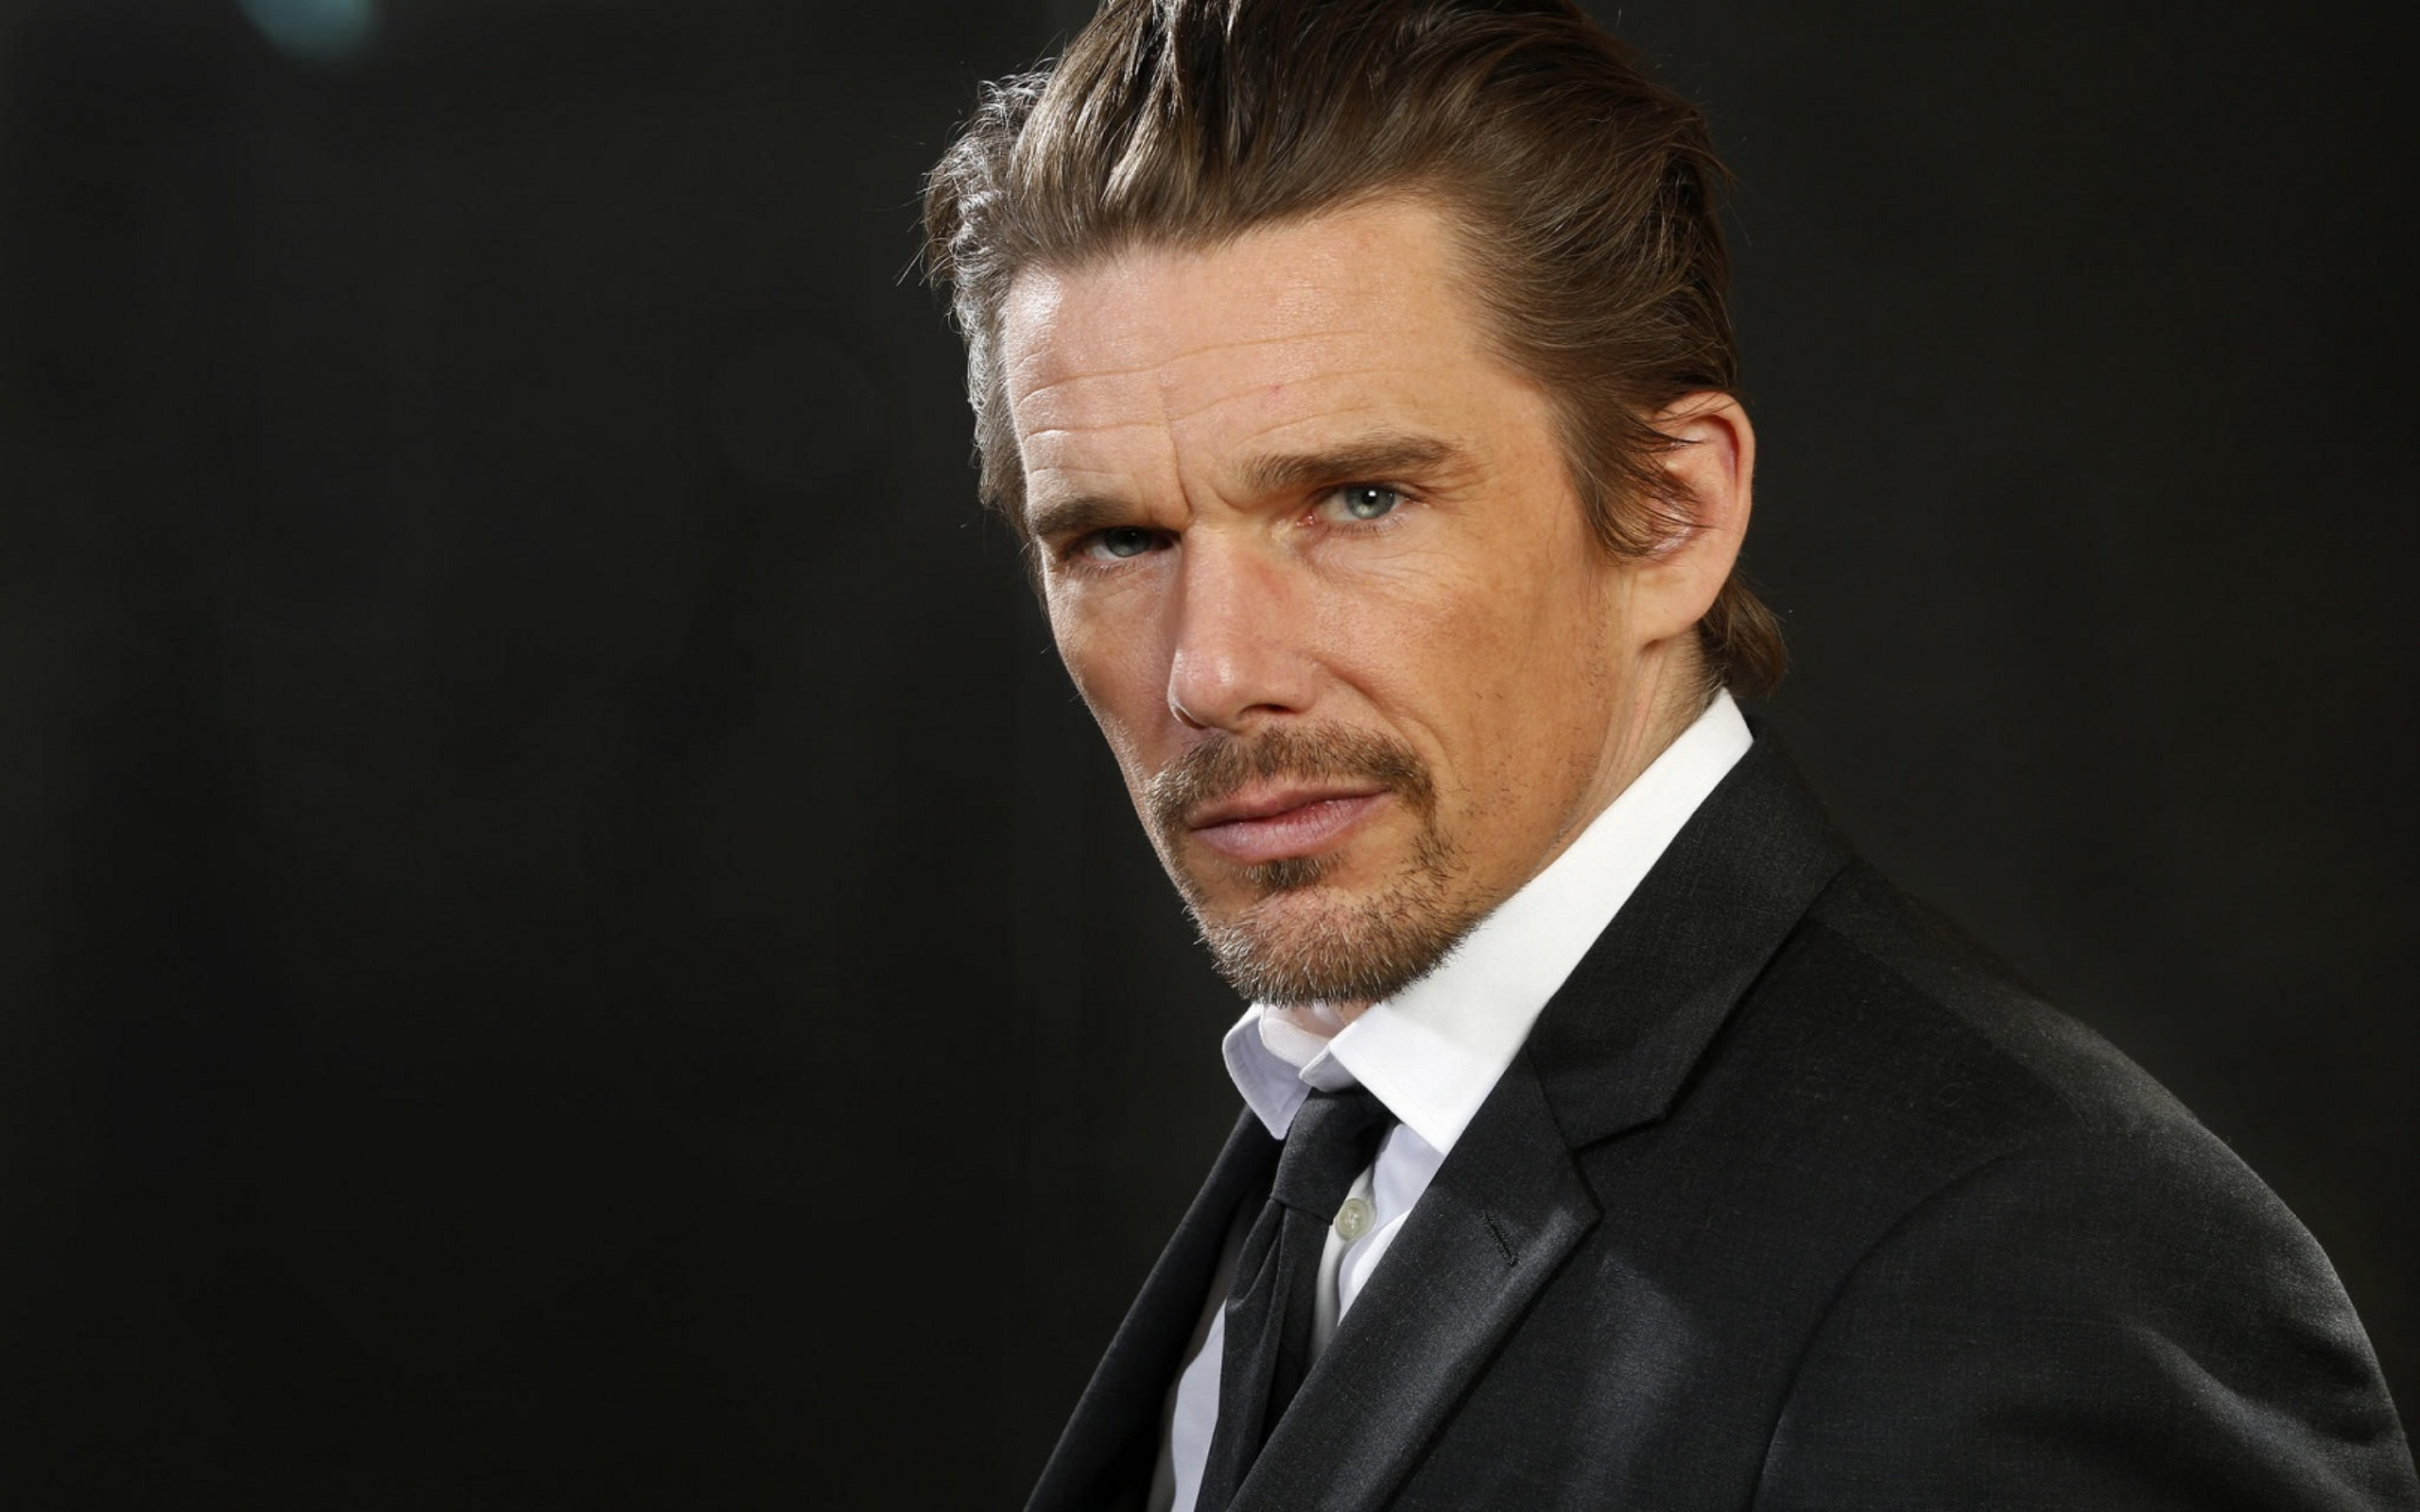 Ethan Hawke Backgrounds, Compatible - PC, Mobile, Gadgets| 2560x1600 px